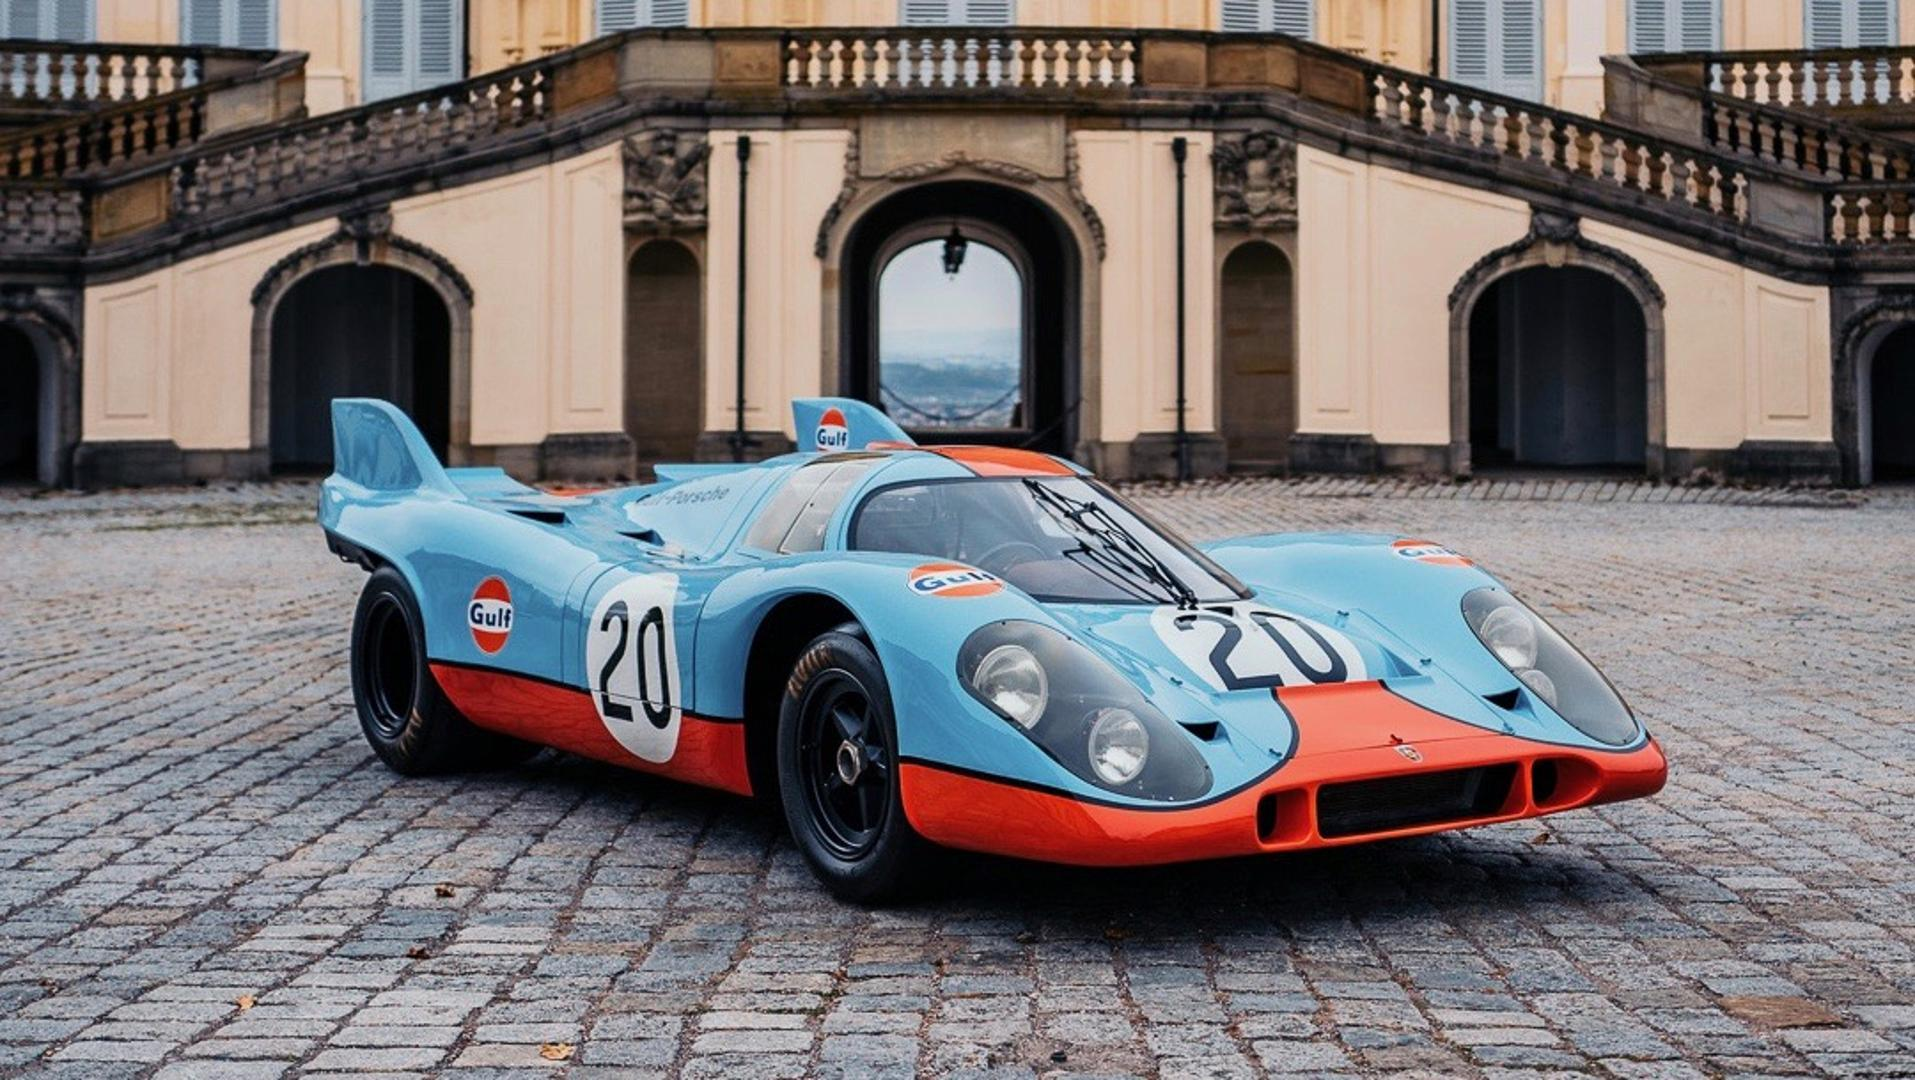 Watch: Porsche's top five most expensive cars of all time